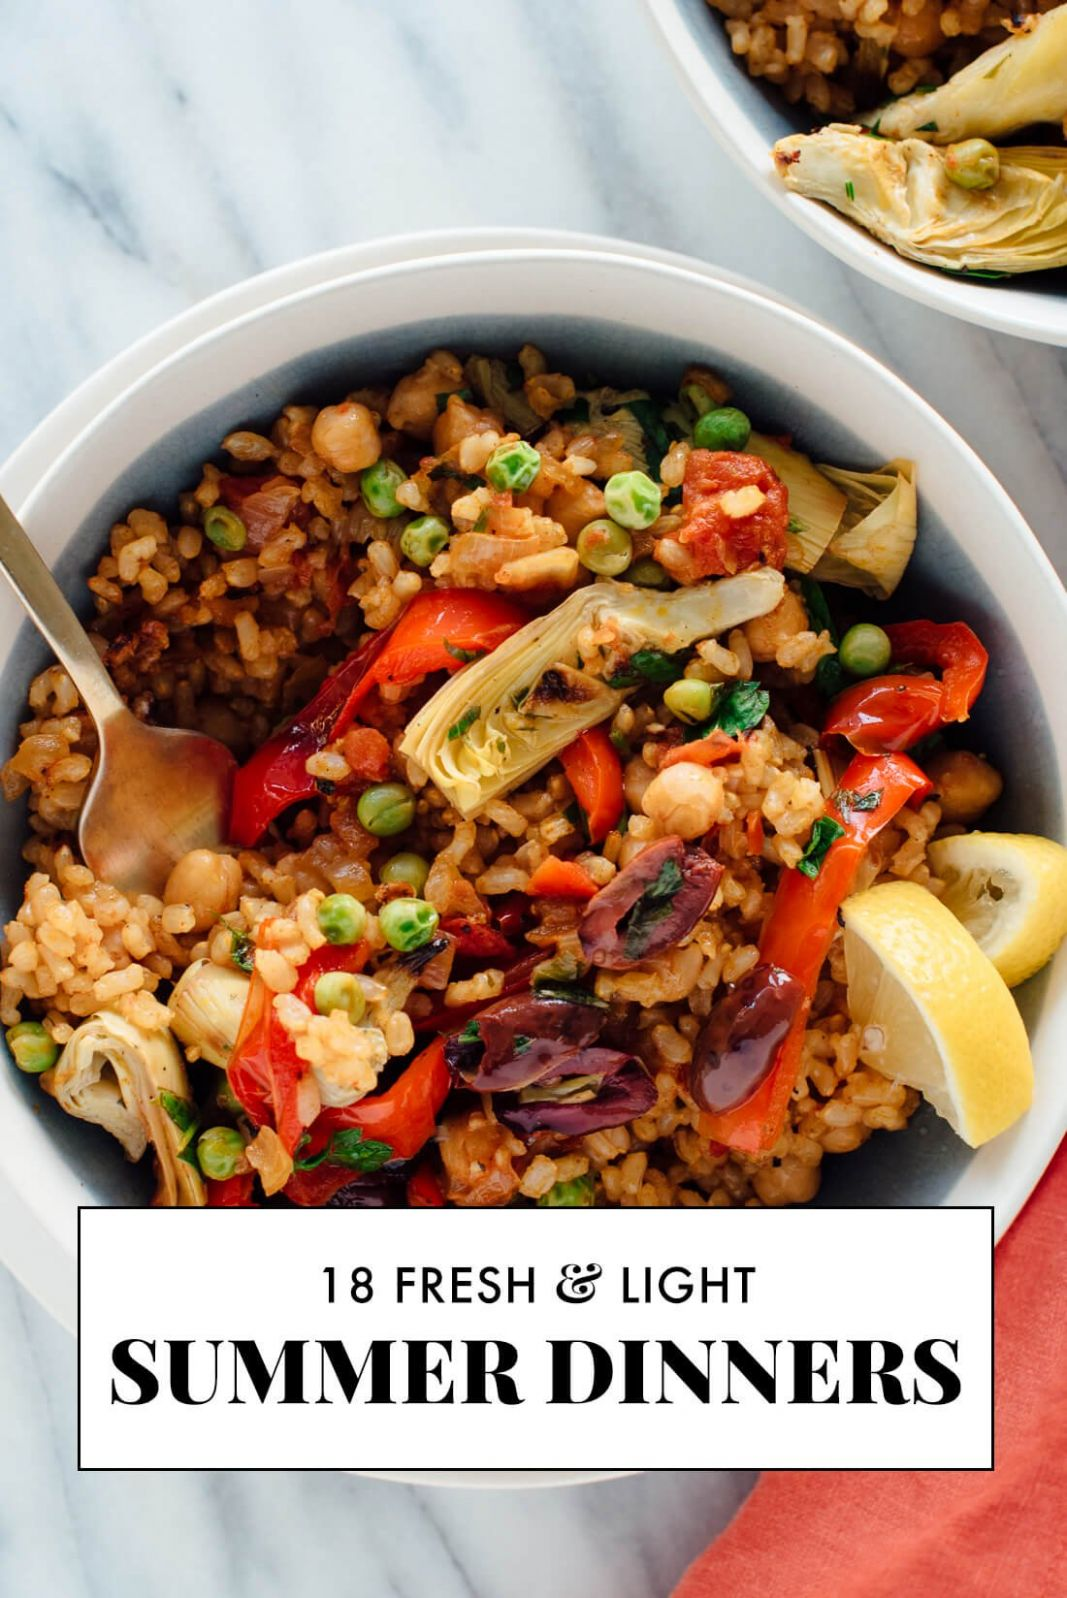 11 Light Summer Dinner Recipes - Cookie and Kate